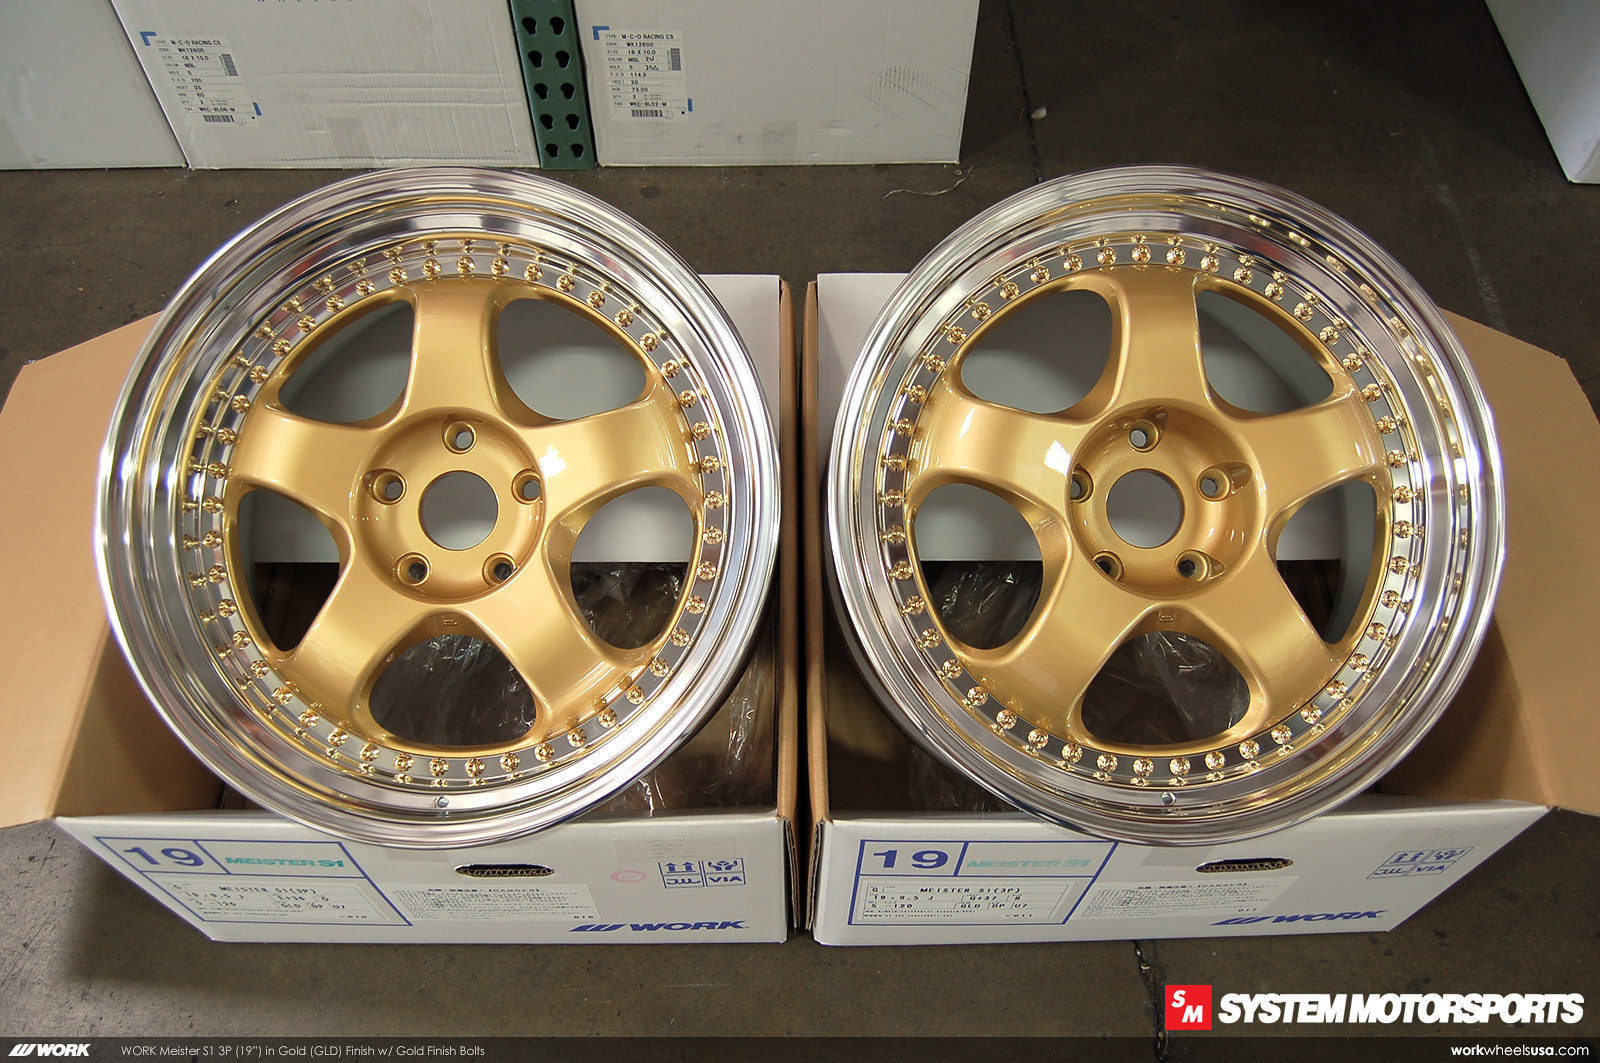 Work Meister S1 3P in a custom (GLD) Gold Face Finish w/ Gold Hardware